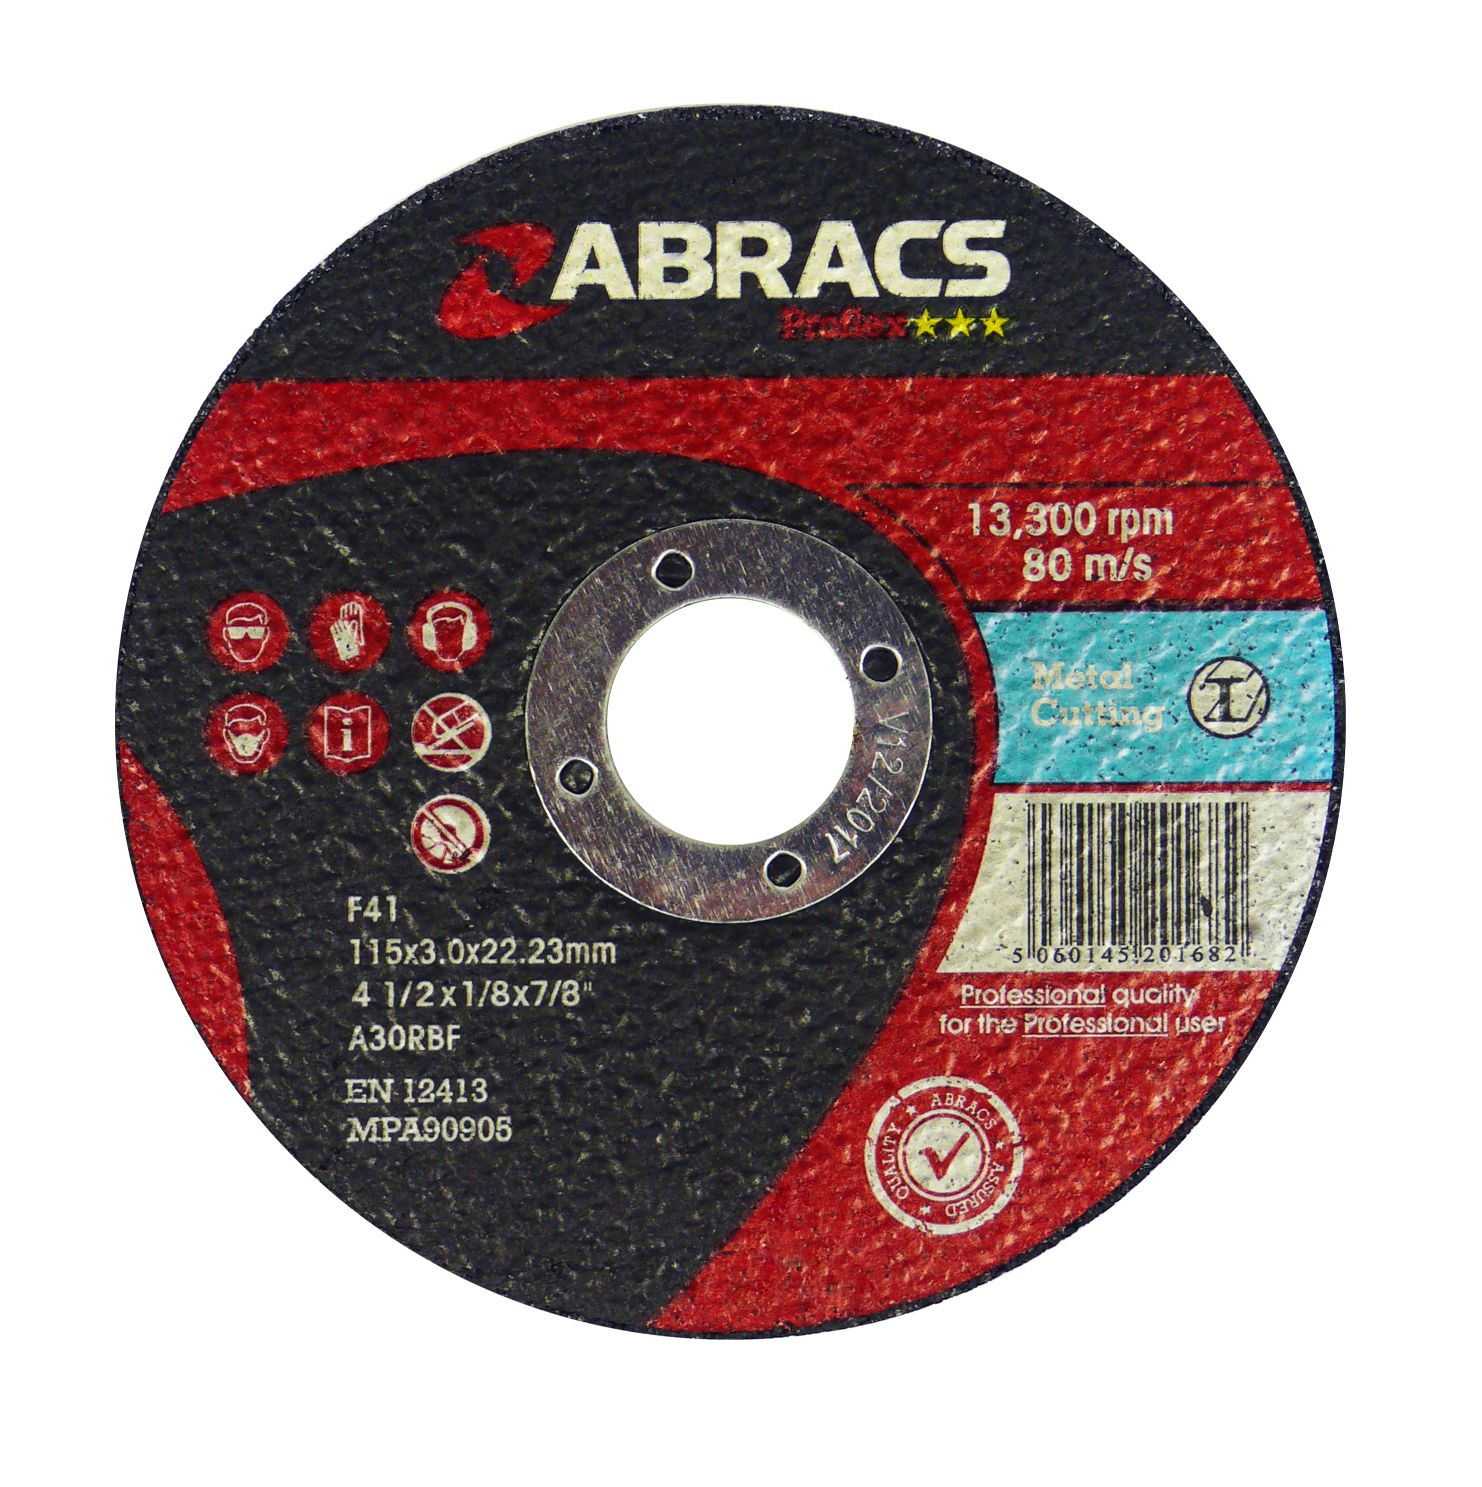 METAL CUTTING DISC - FLAT 100 X 3.0 X 16MM